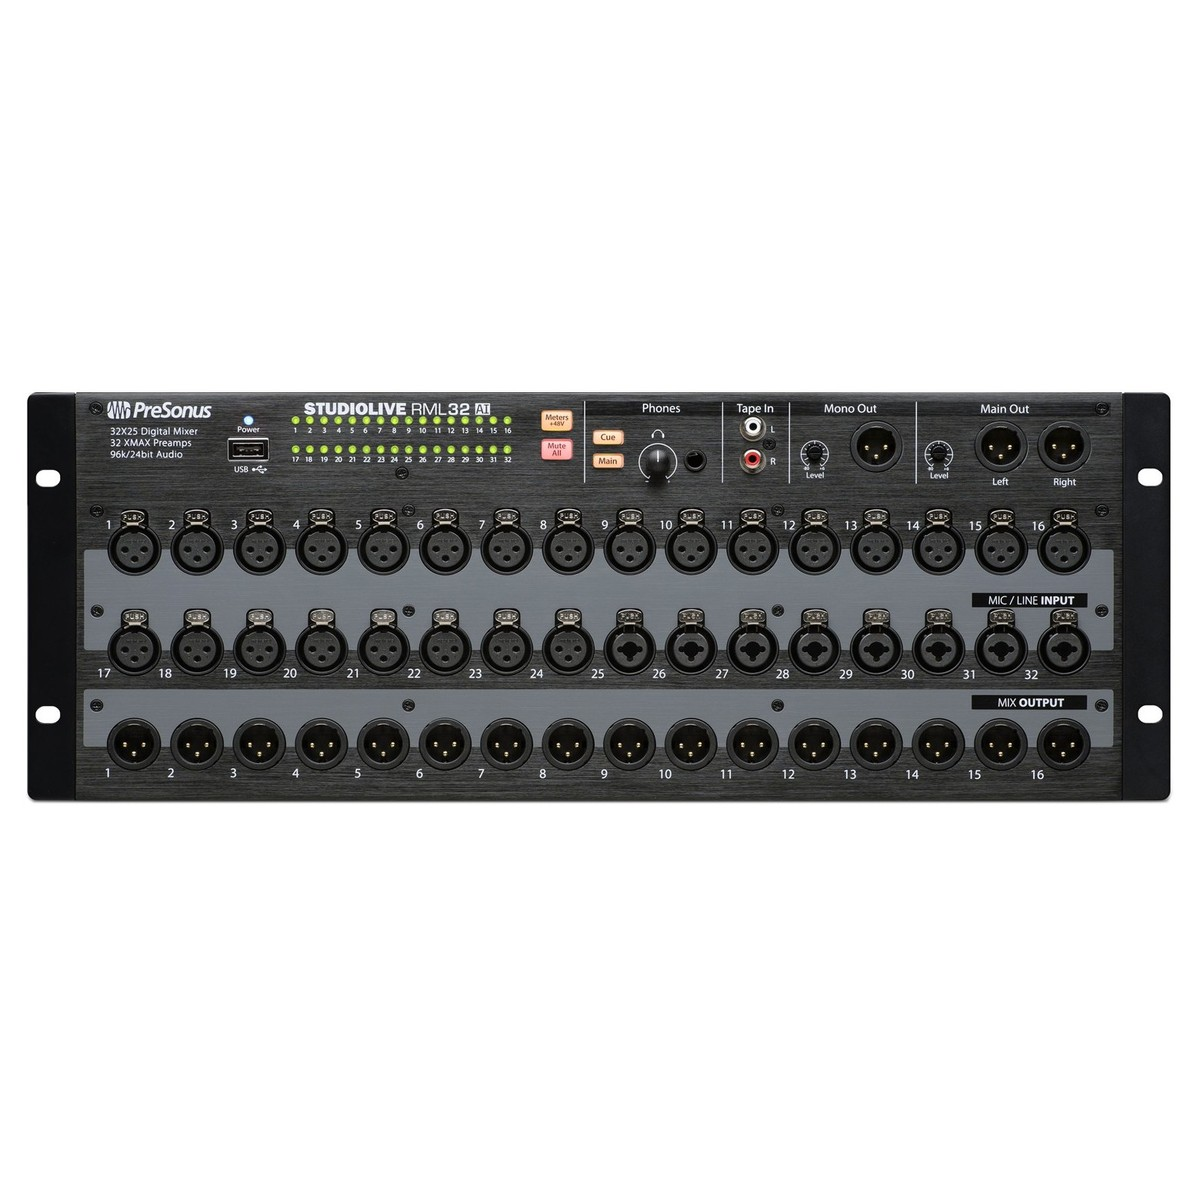 Disc presonus studiolive rml32ai rack mount digital mixer - Table de mixage professionnelle studio ...